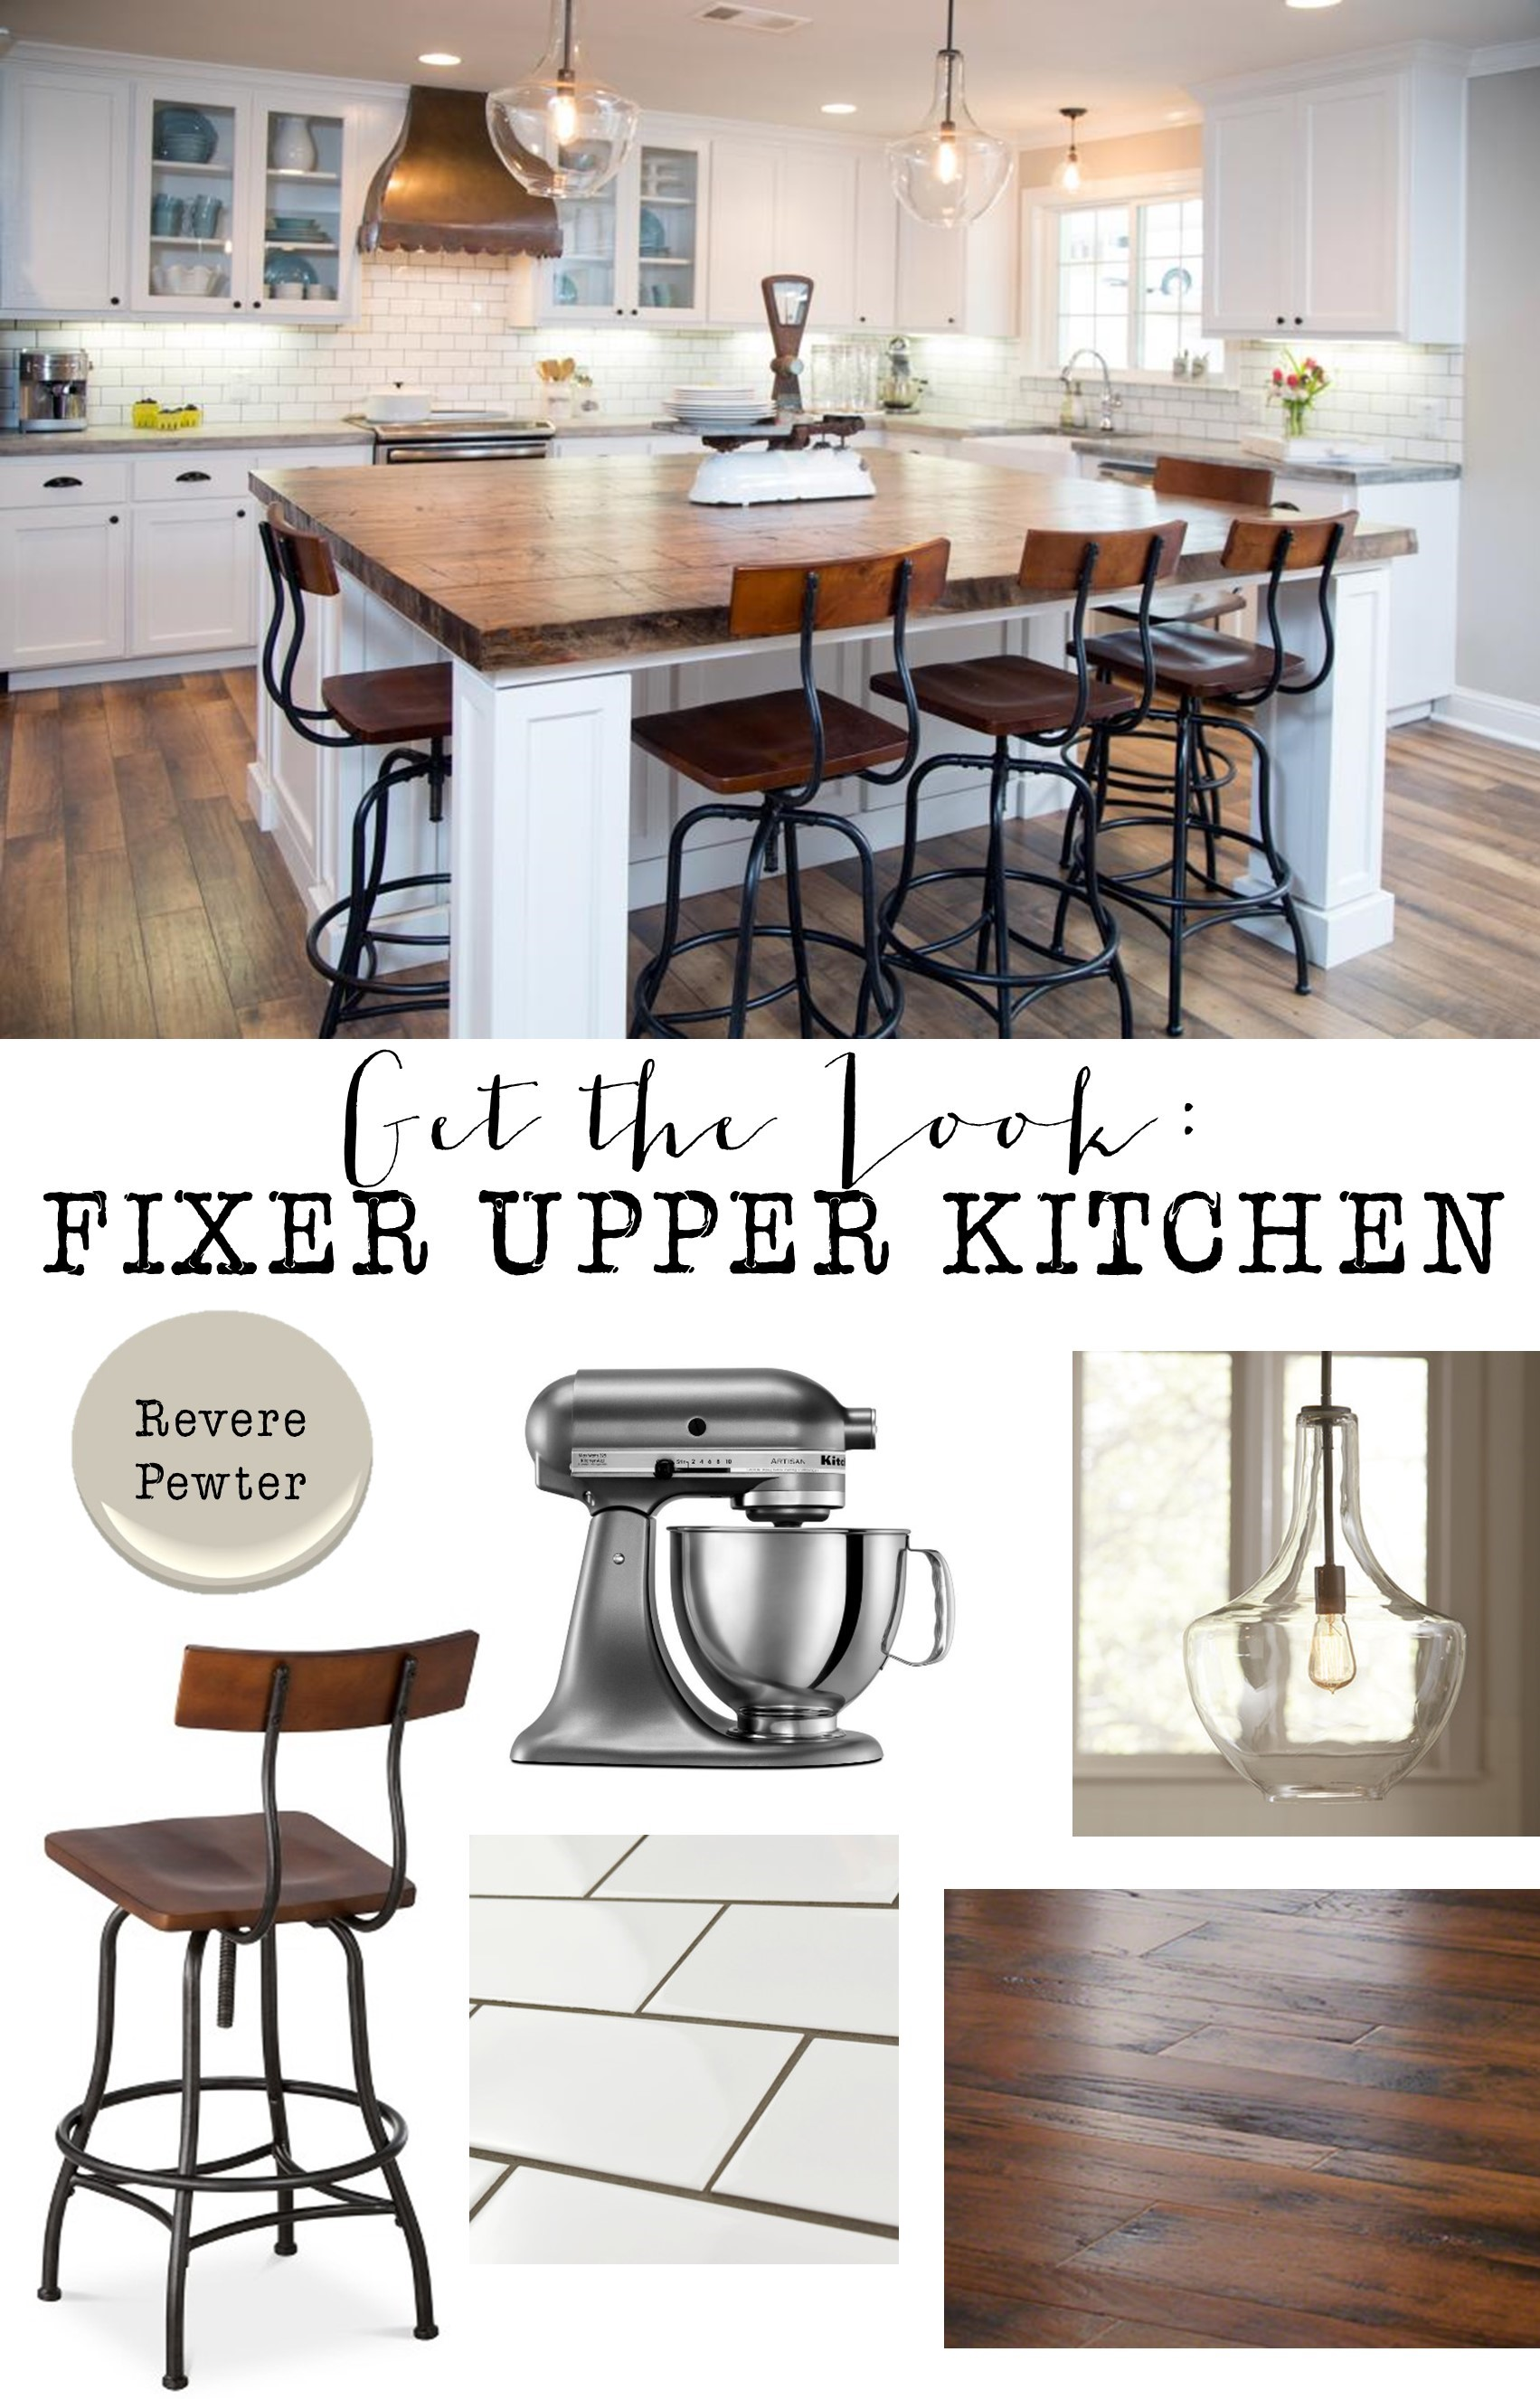 Fixer upper kitchen lighting - You How To Get The Look Of This Amazing Fixer Upper Kitchen